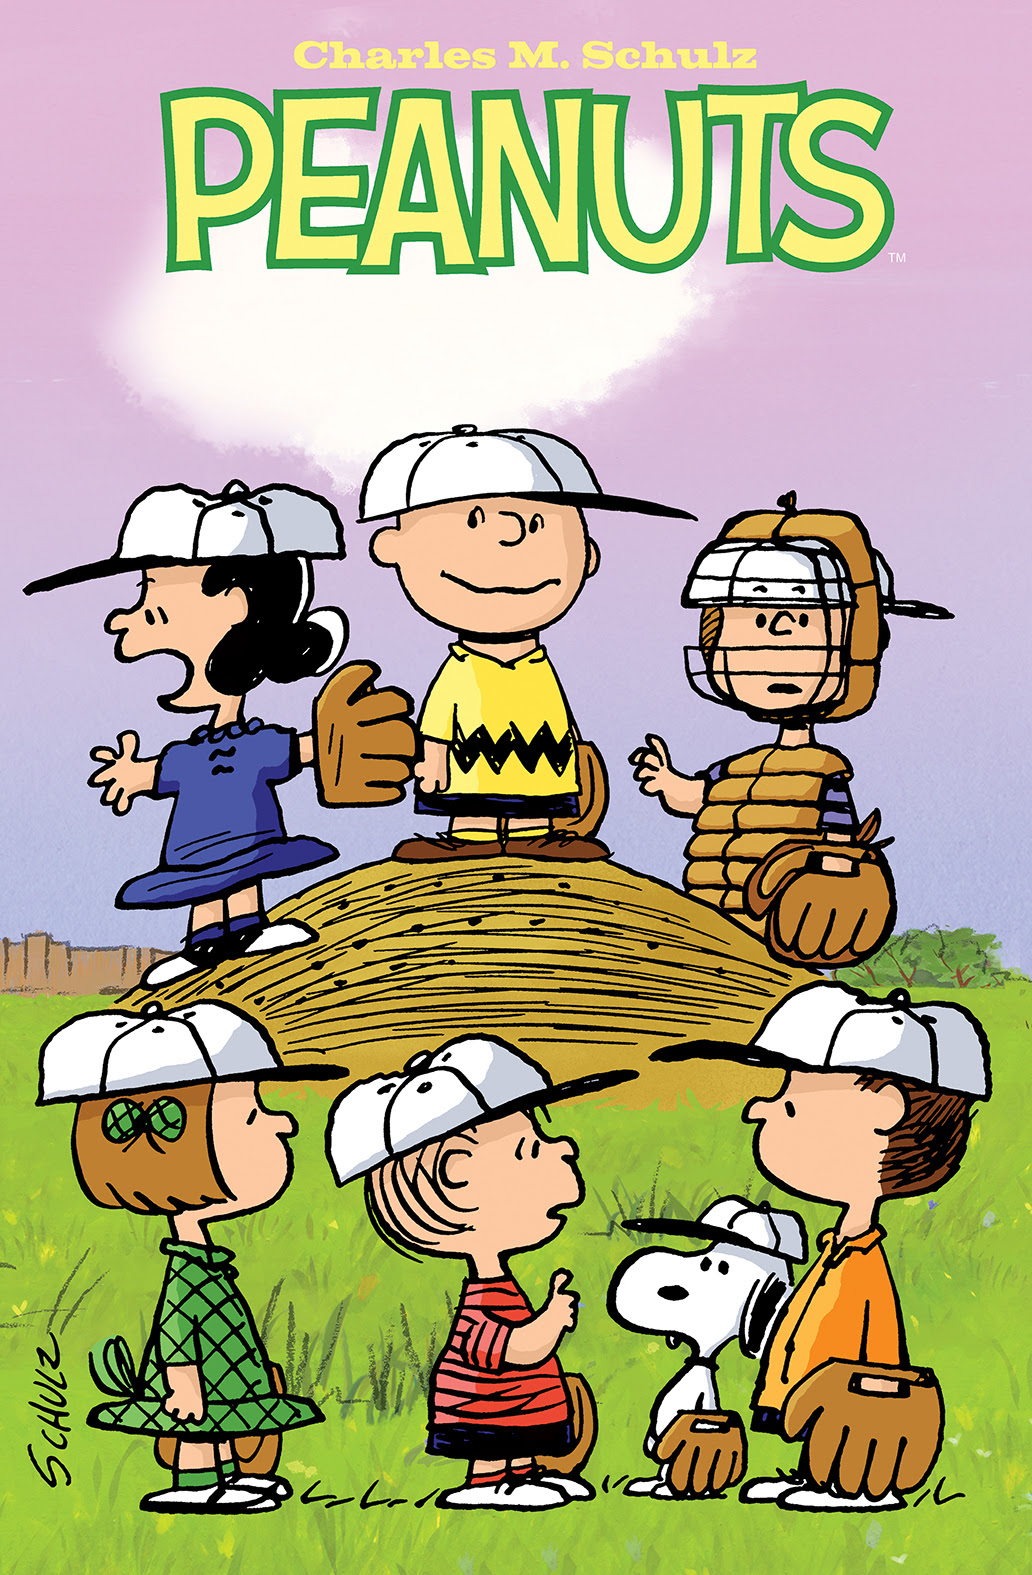 PEANUTS #18 Cover by Charles Schulz, Various